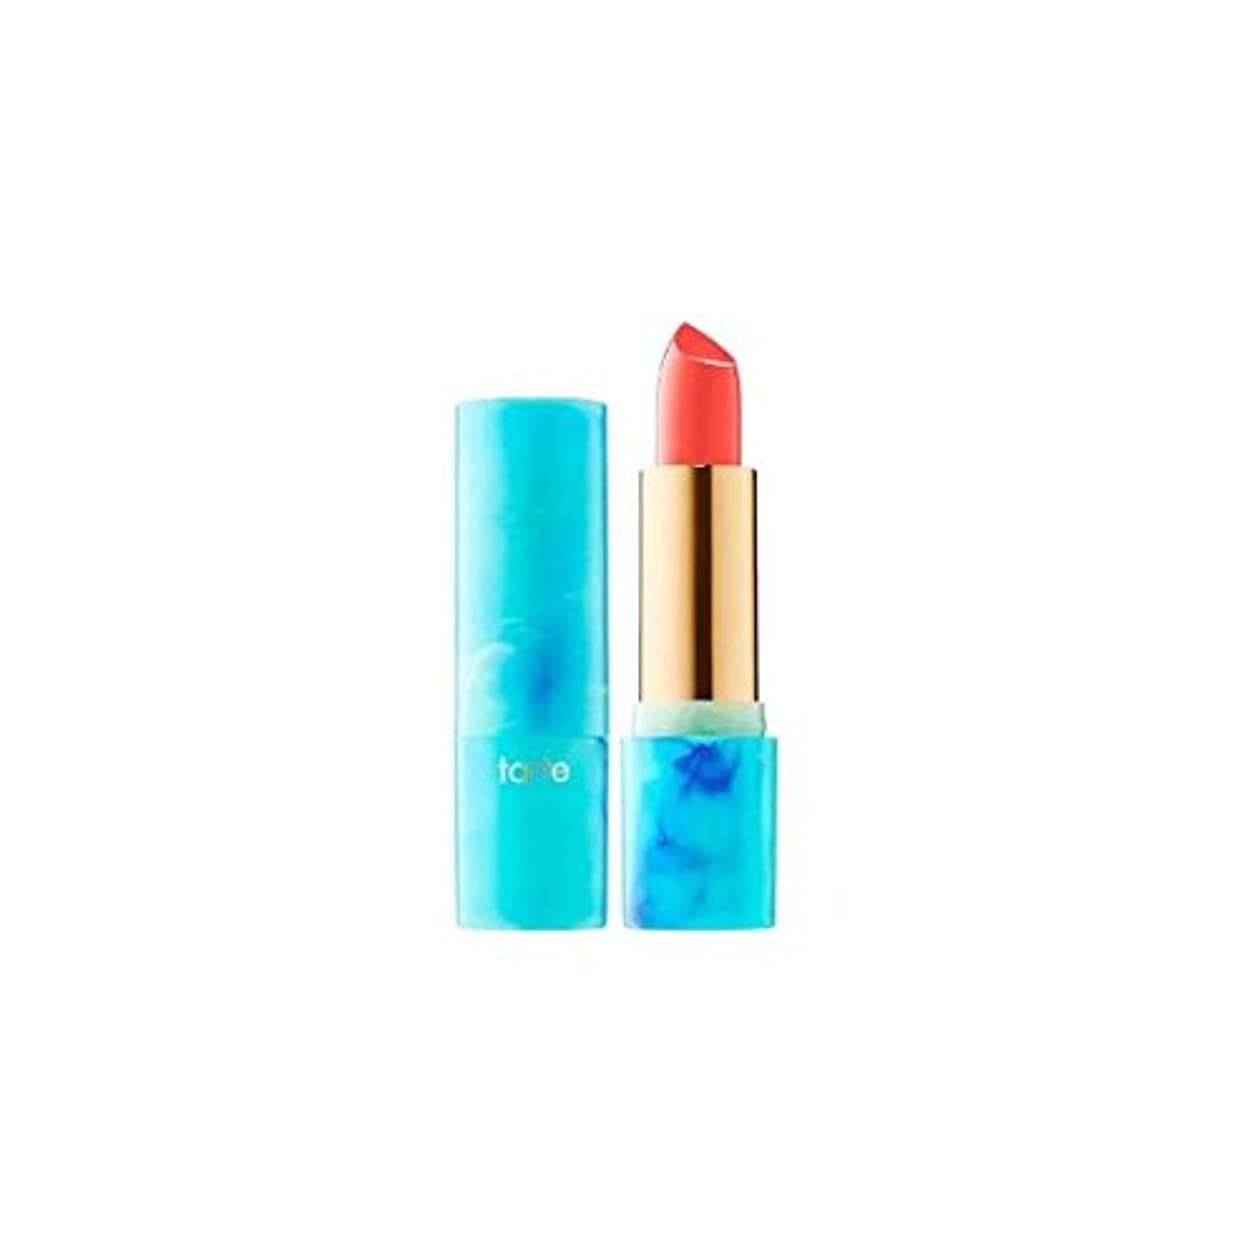 感覚ワイプスロープtarteタルト リップ Color Splash Lipstick - Rainforest of the Sea Collection Satin finish